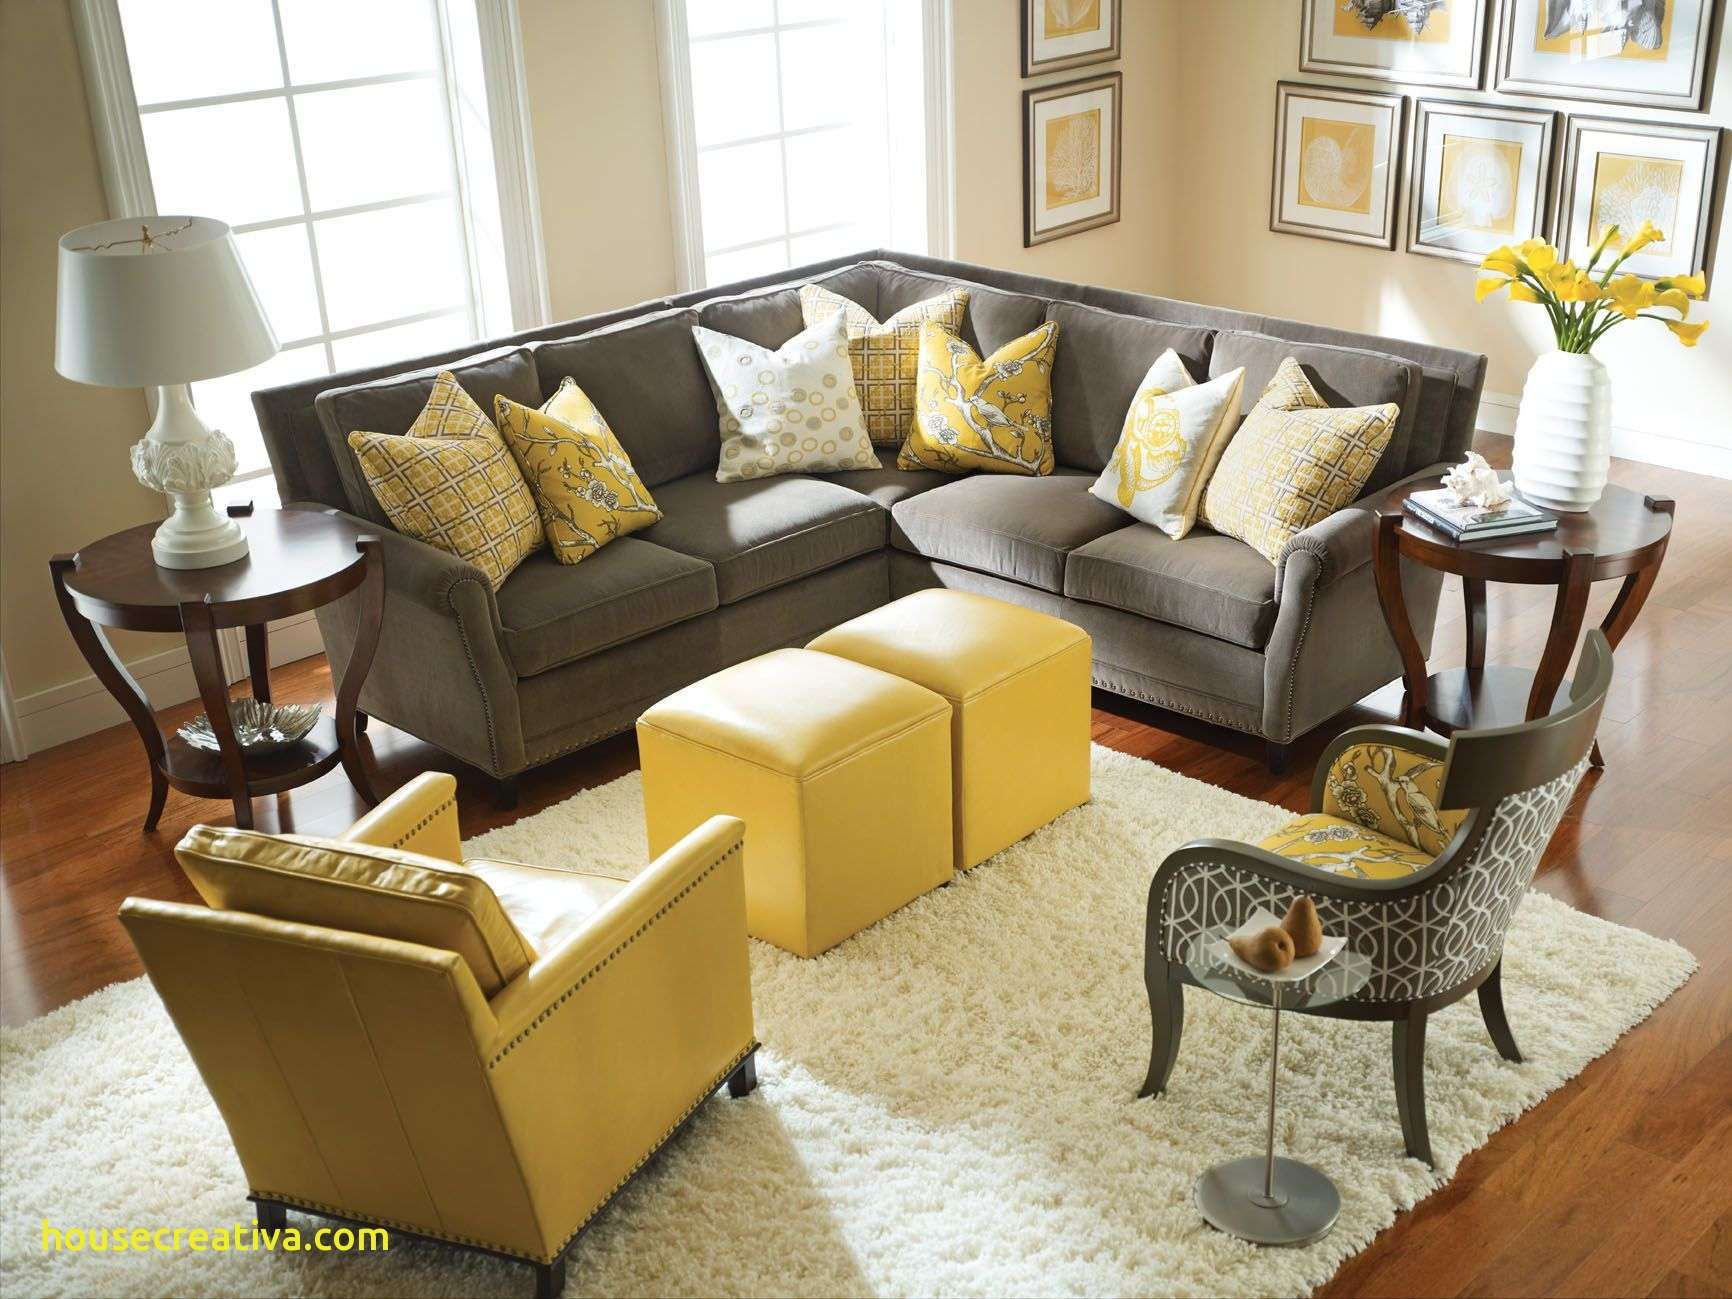 10+ Most Popular Yellow Walls Living Room Ideas